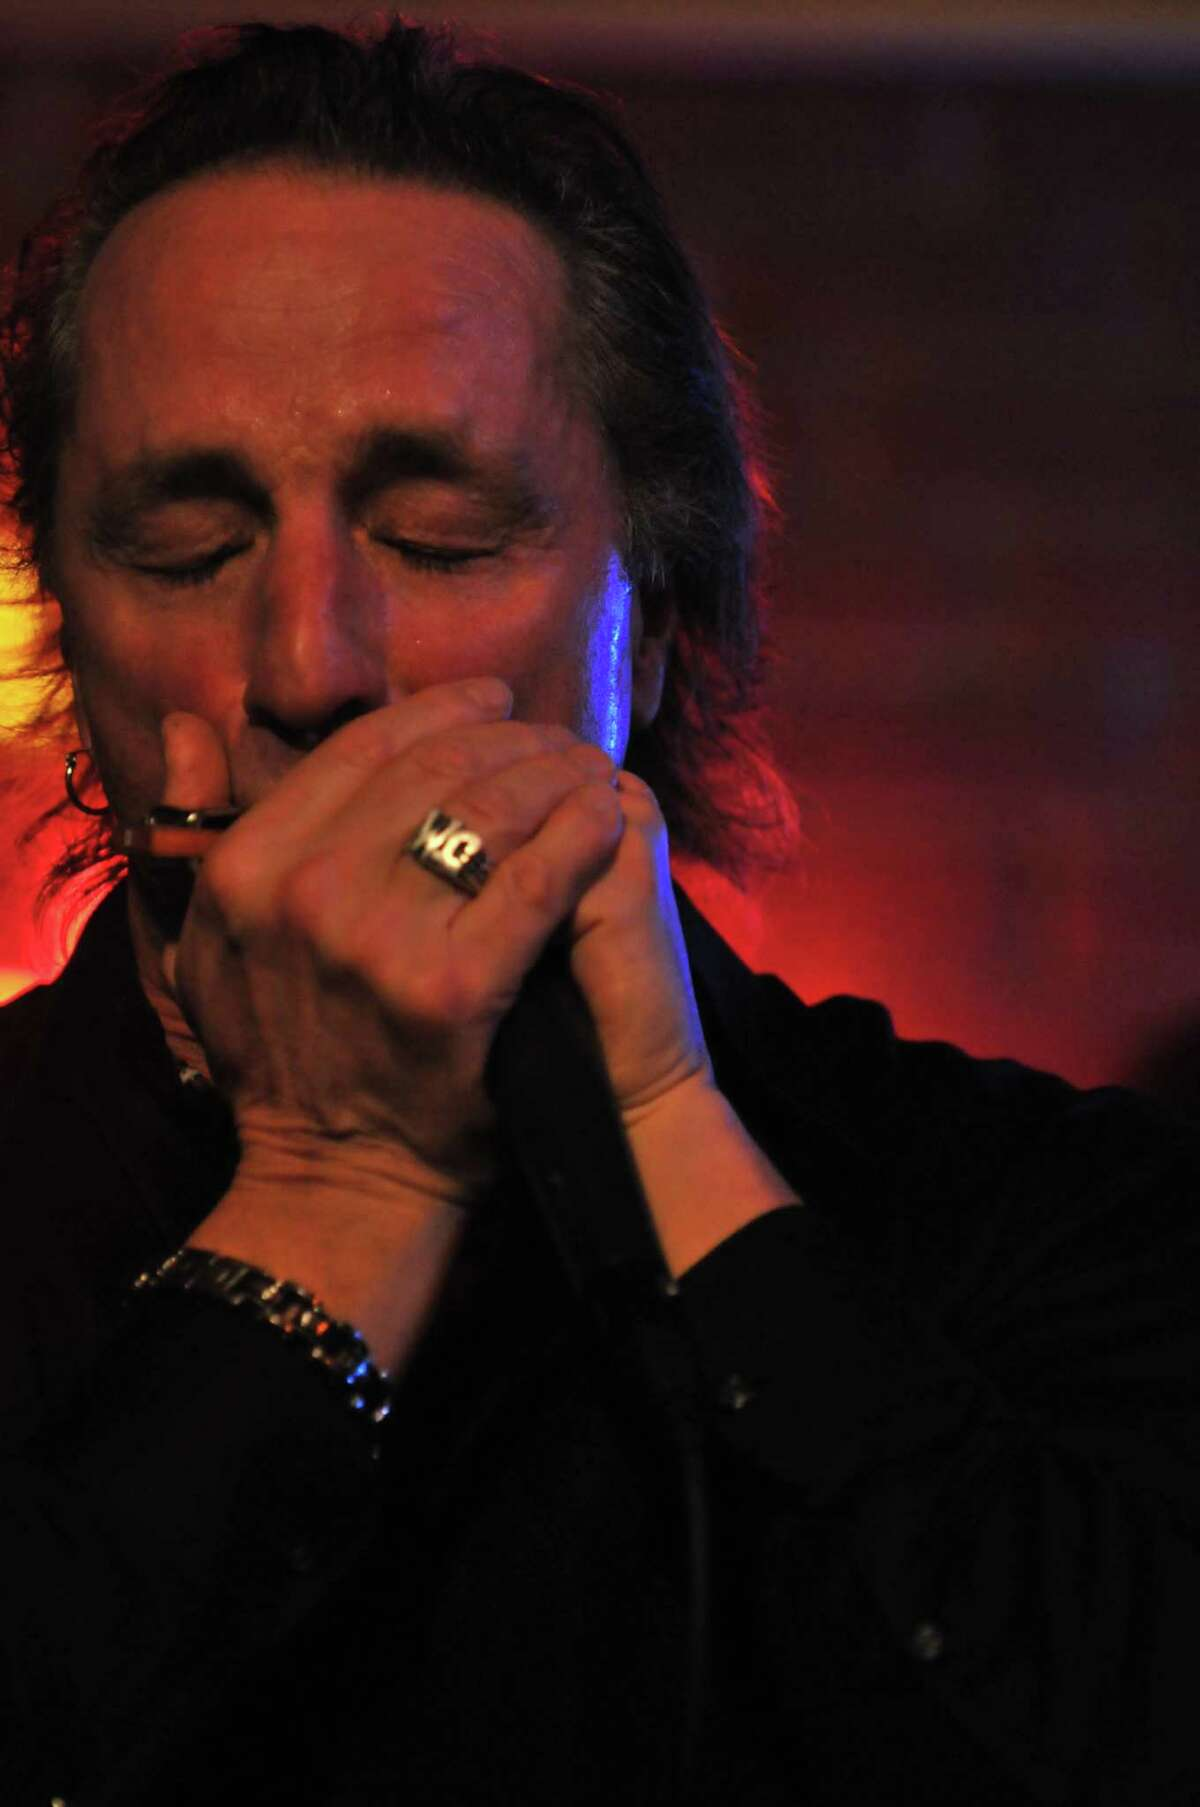 """Harmonica ace James Montgomery stops by the Space Ballroom on Friday, June 29, 2018 for a show that also will feature Christine Ohlman, Cliff Goodwin and the Uptown Horns, led by Crispin Cioe. Connecticut's Tom """"The Suit"""" Forst Band https://www.tomthesuitforst.com/ will open the show -- billed as a """"Blues Super Session."""" It begins at 8 p.m. Admission is $25 in advance, available at www.spaceballroom.com, or $30 at the door."""